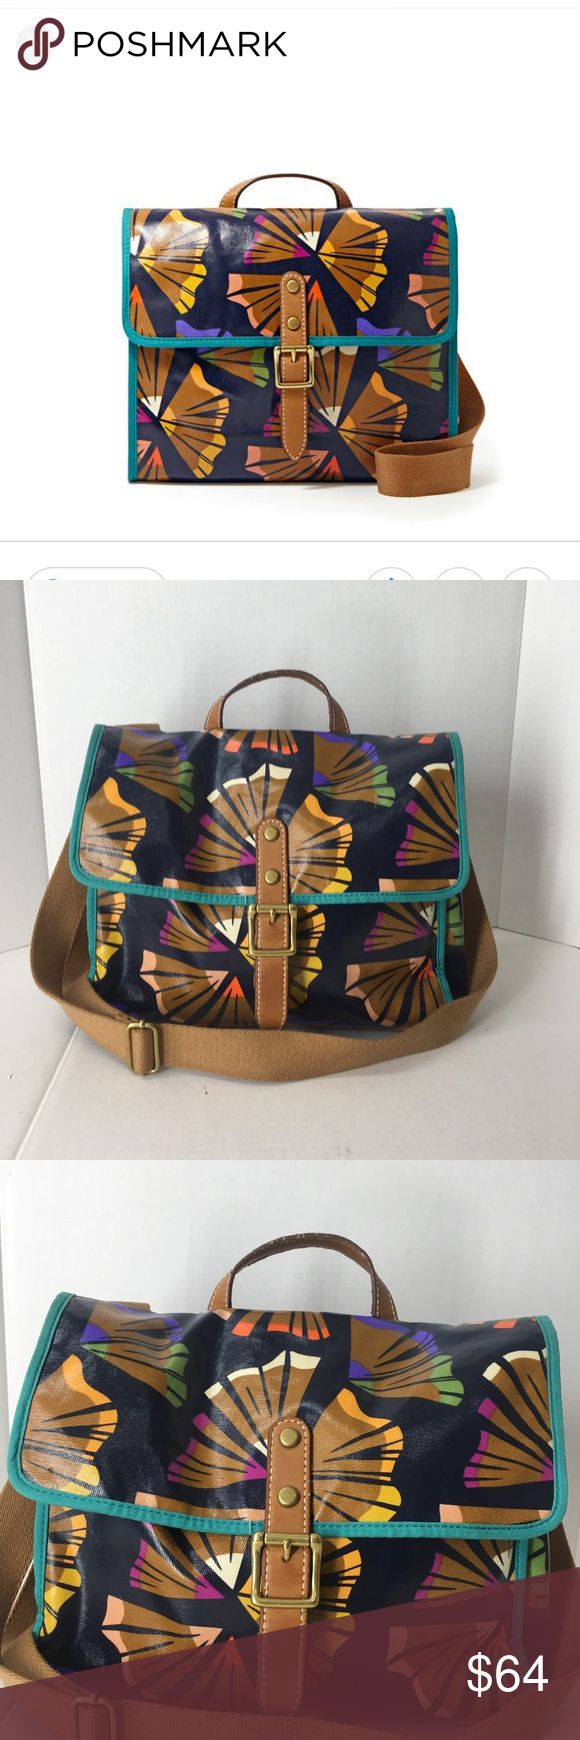 Fossil pencil shavings crossbody satchel bag Great condition! Only wear is on the handle where there is come cracking and fraying. Inside is super clean no stains or tears. Super cute pencil shaving print. Colorful and vibrant glossed canvas finish. Medium sized bag big enough to fit everything you need. Zipper compartments inside and on the back. Latch closure in the front. Grab this cutie before I keep it ! Fossil Bags Crossbody Bags